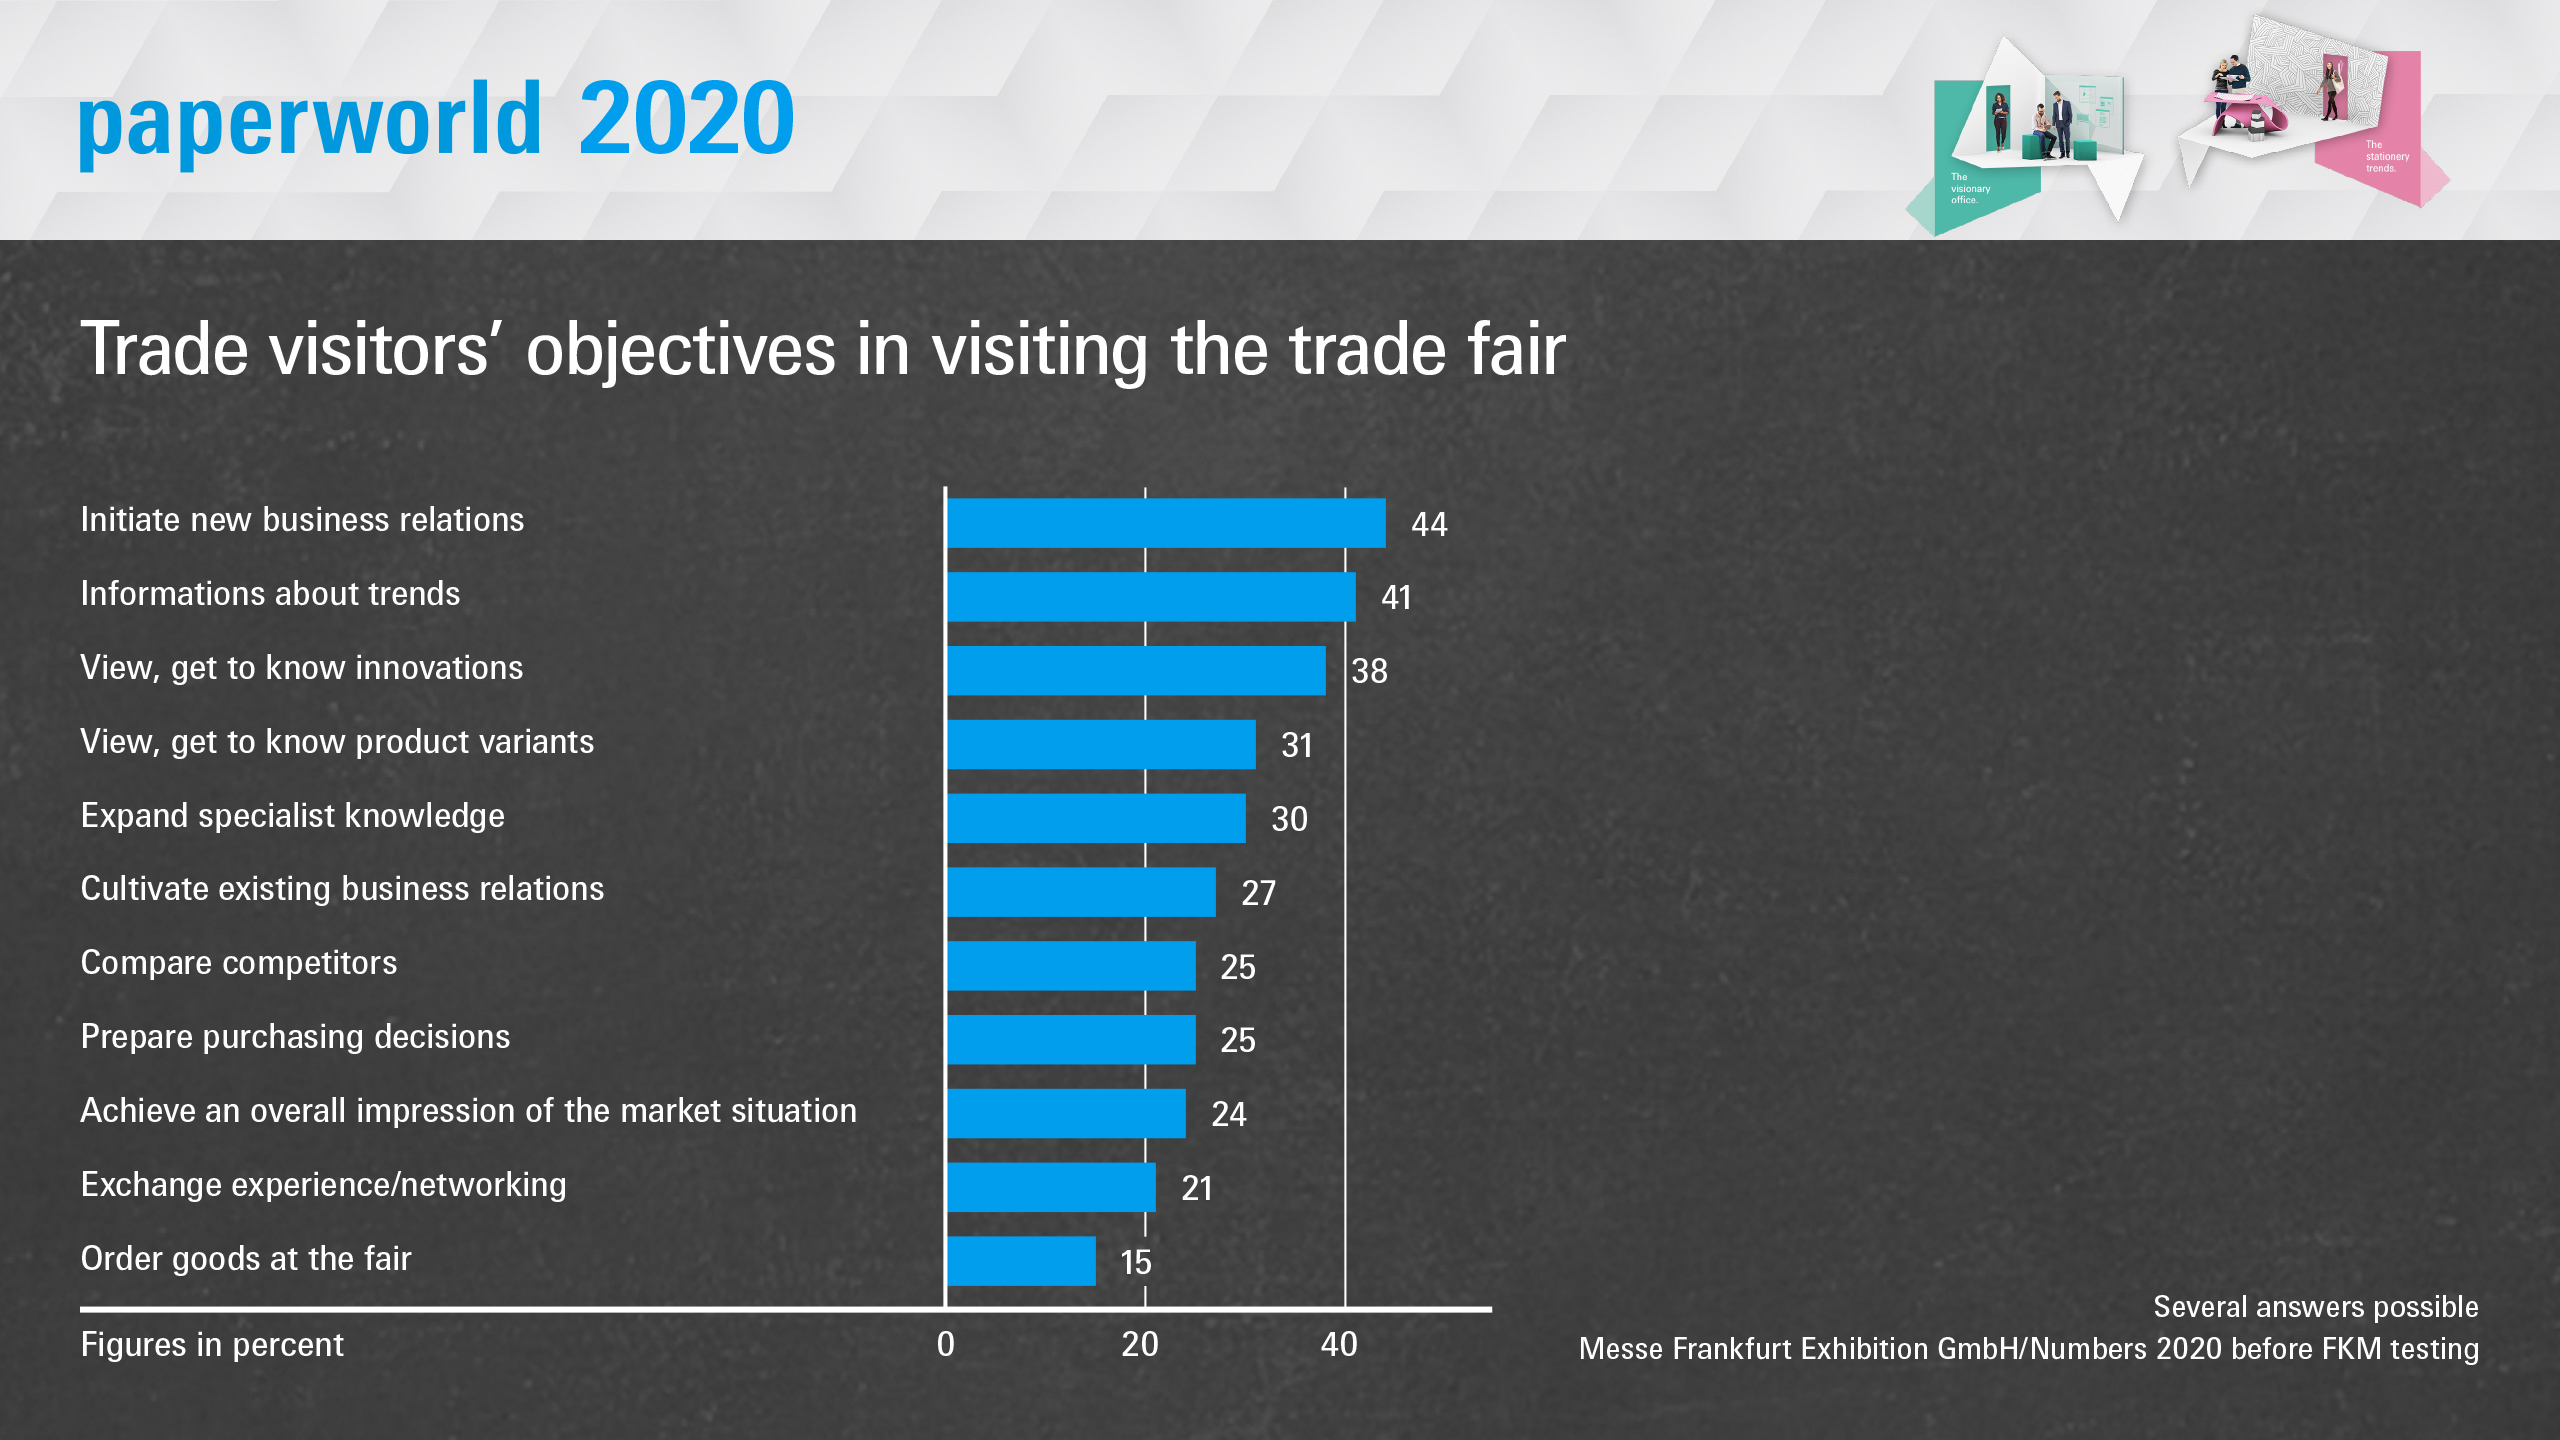 Paperworld 2020: Trade visitors' objectives in visiting the trade fair.